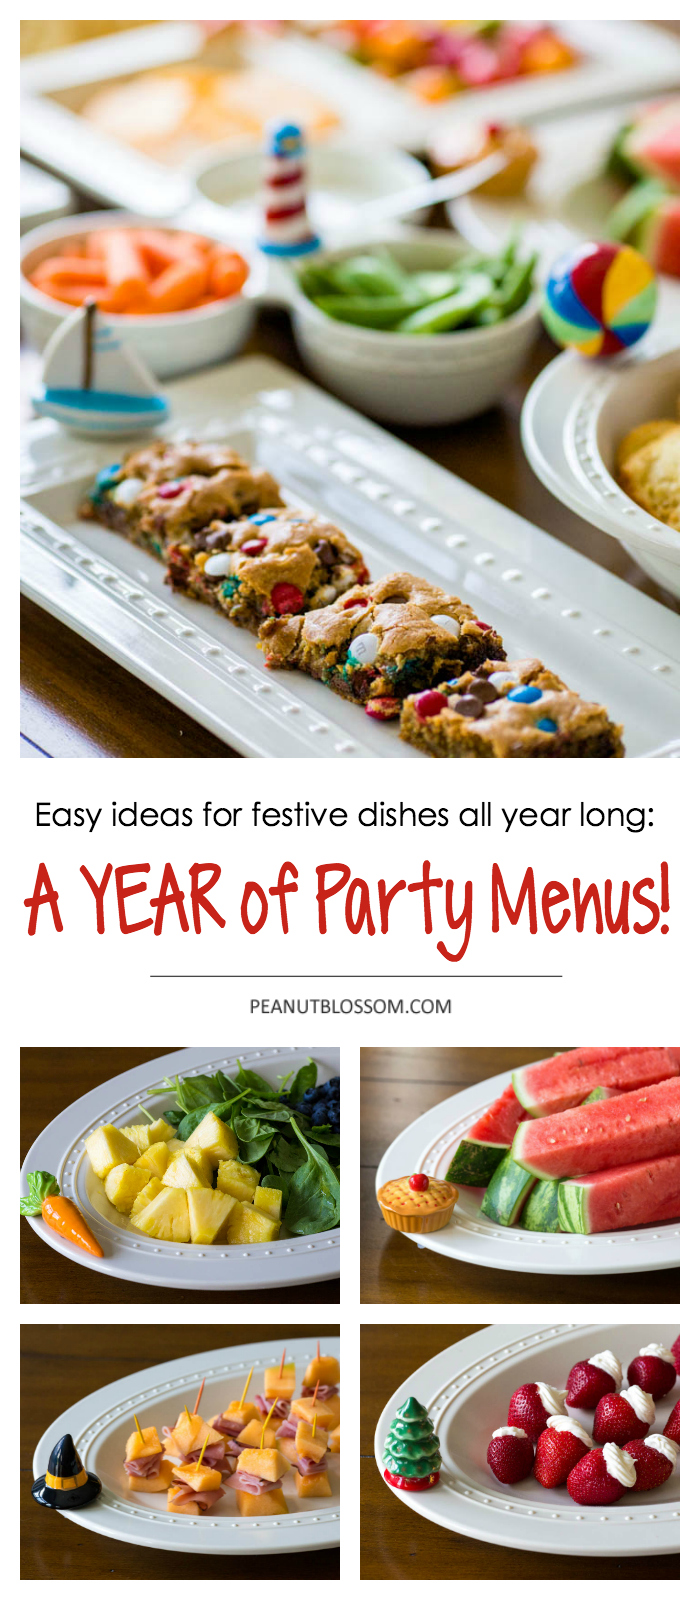 A whole YEAR of party menu ideas! These simple party recipes are perfect for seasonal entertaining and take just minutes to pull together.